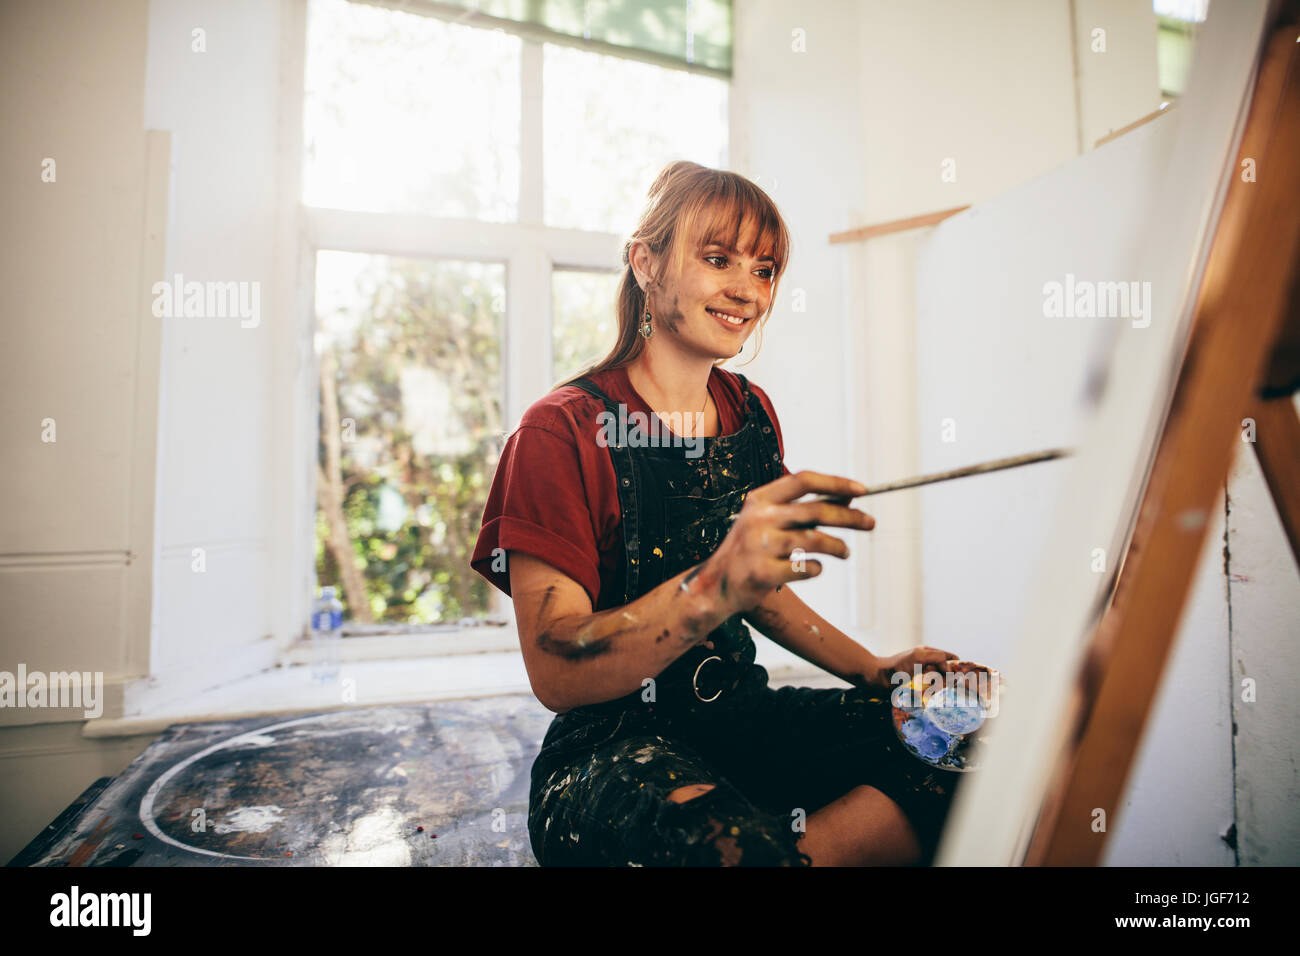 Piscine shot of female artist painting in studio. Peinture femme peintre dans son atelier. Photo Stock